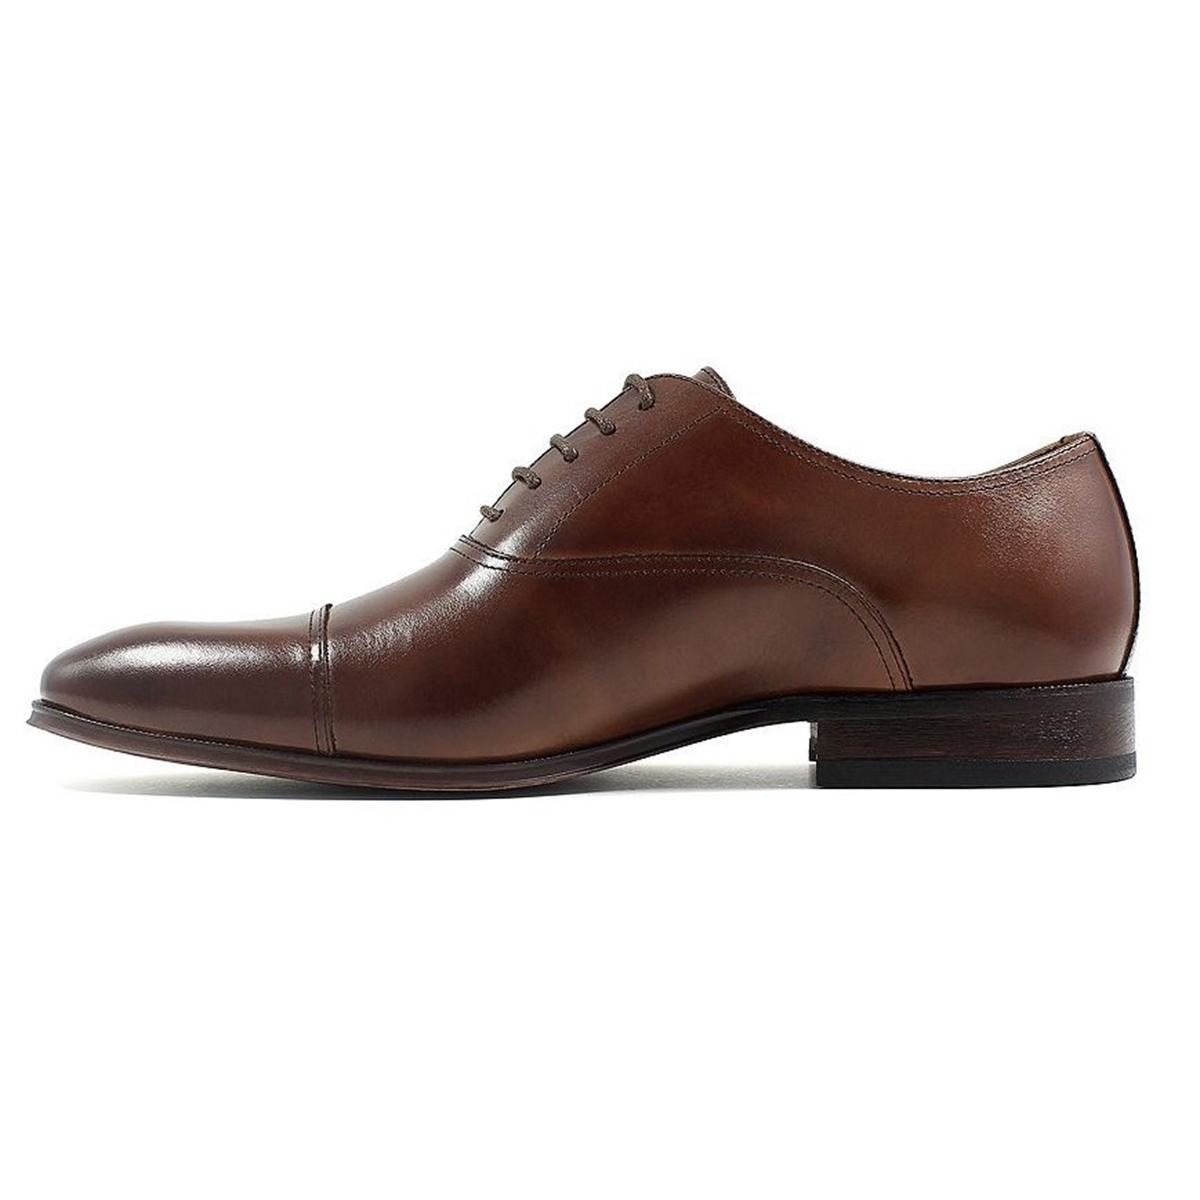 Florsheim Men Corbetta Cap Toe Oxford Shoes by Florsheim